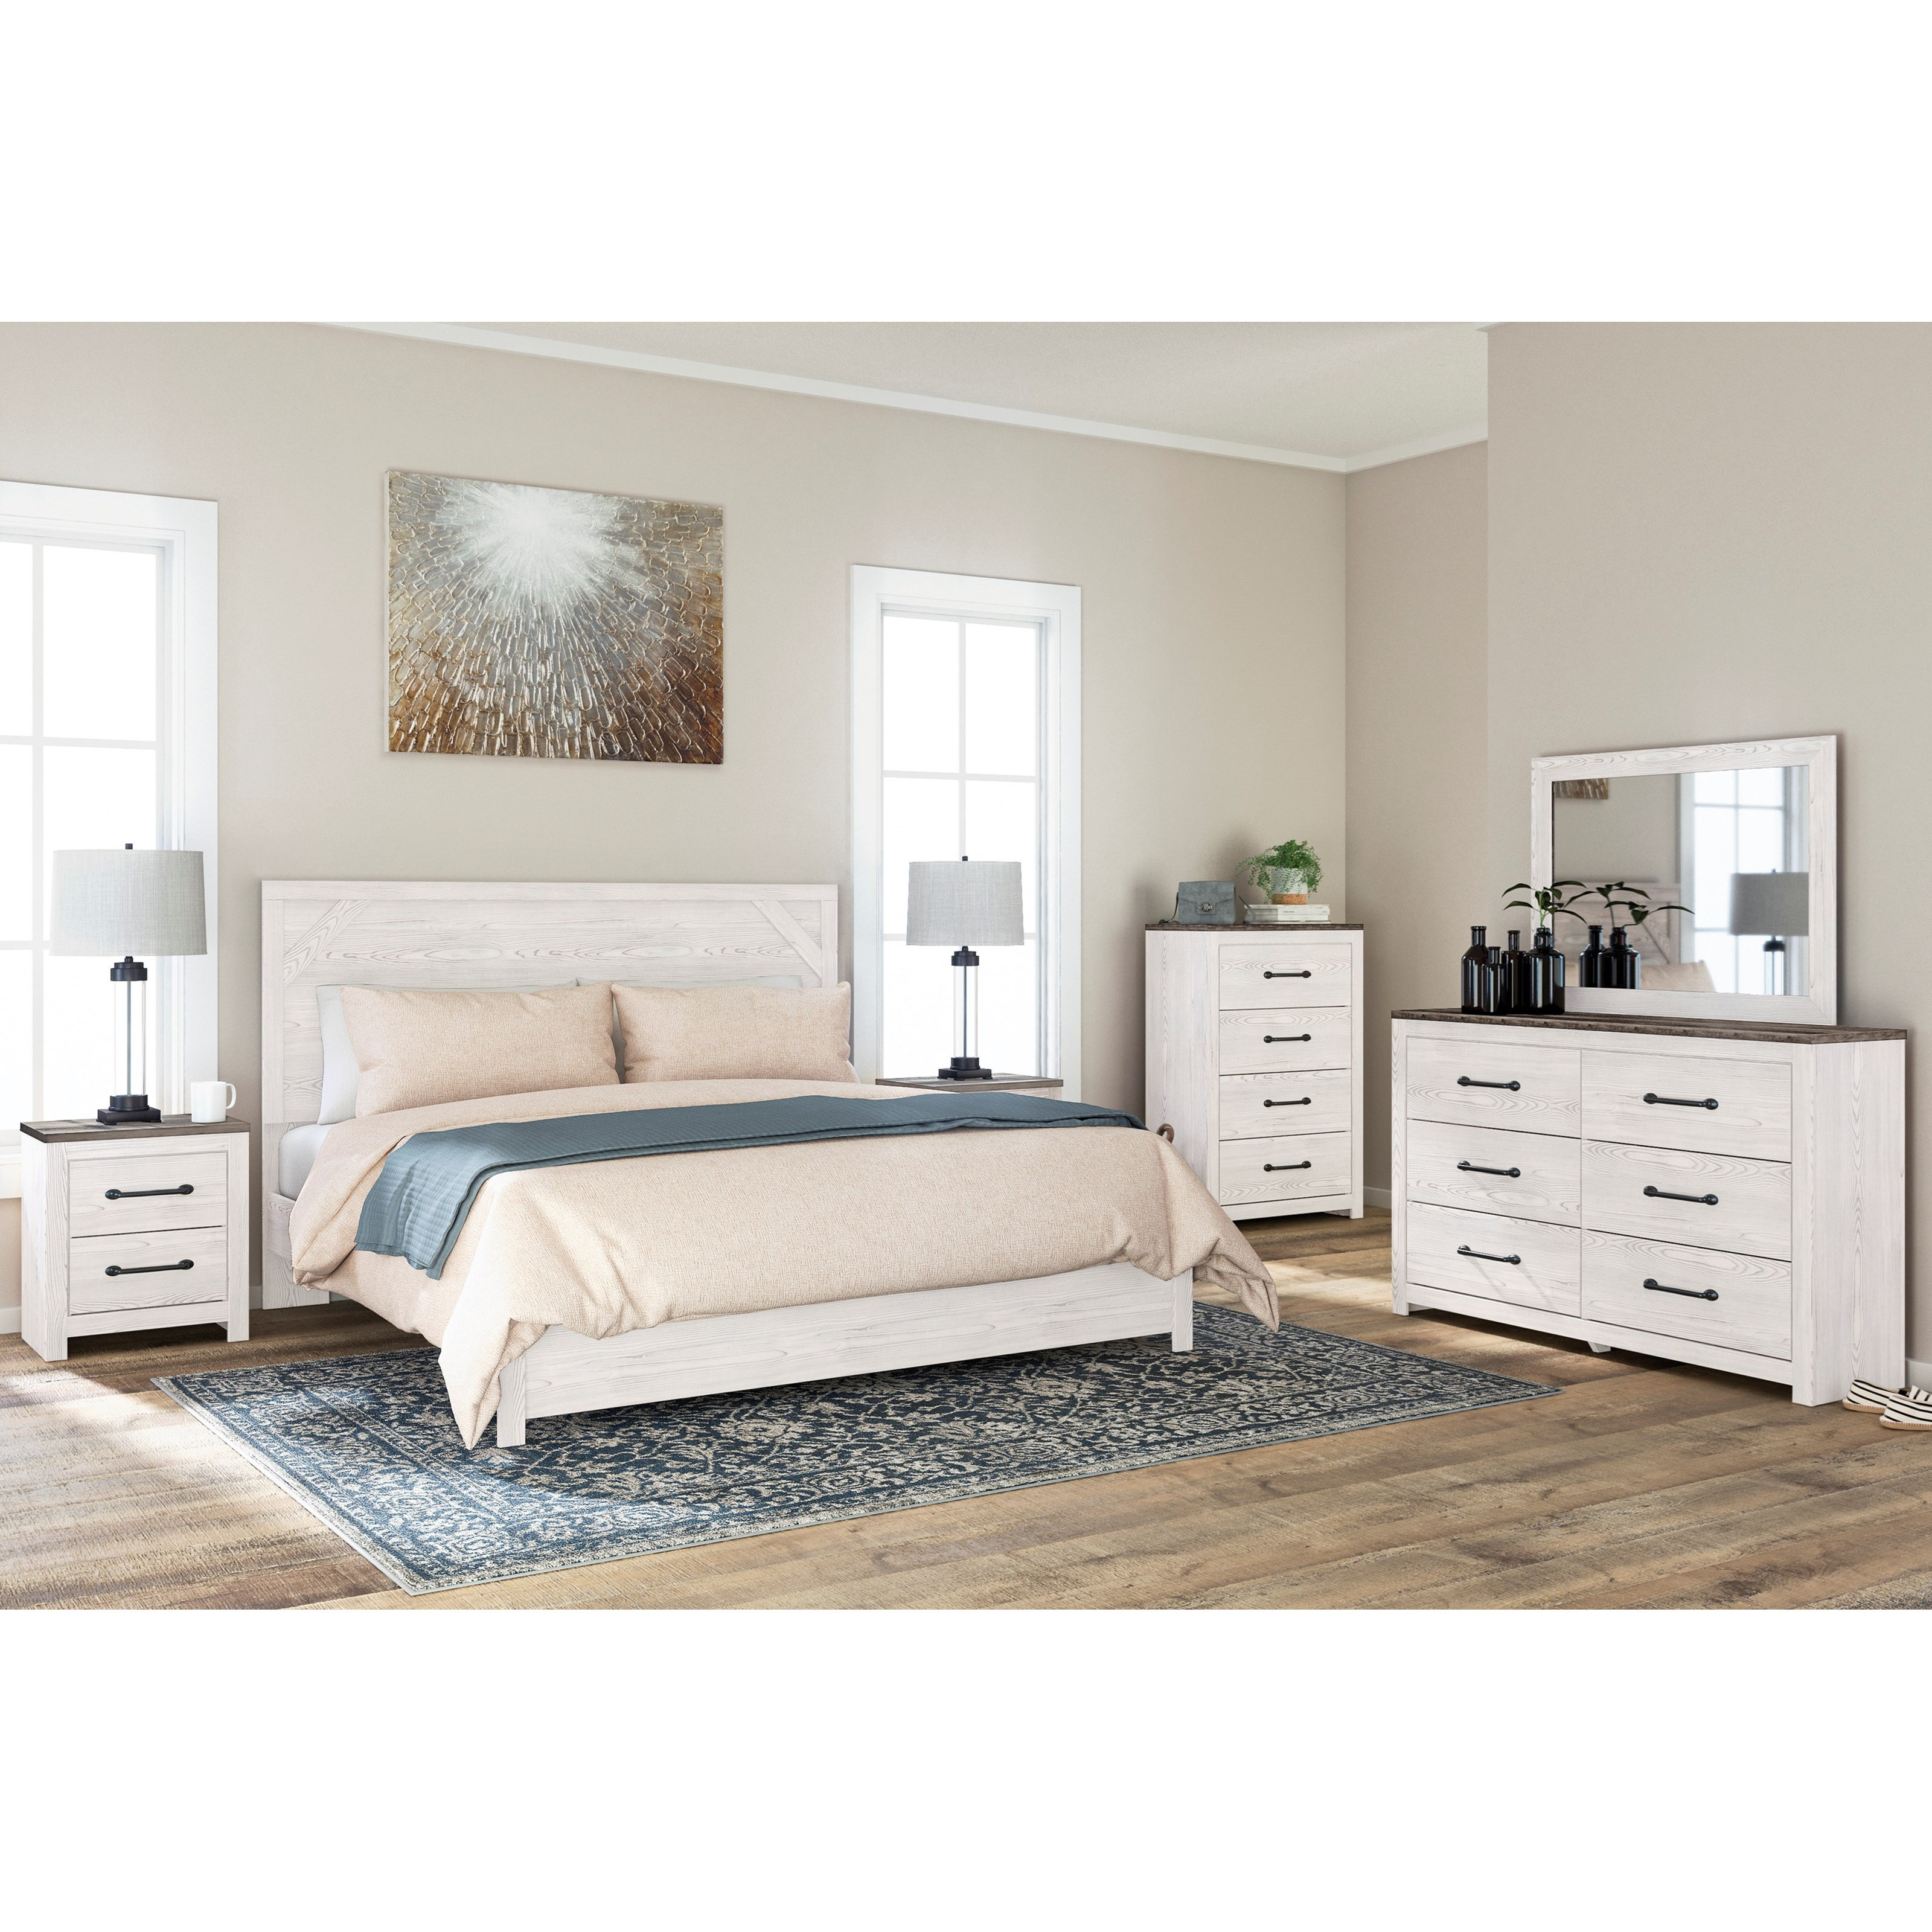 Gerridan King Bedroom Group by Signature Design by Ashley at Northeast Factory Direct